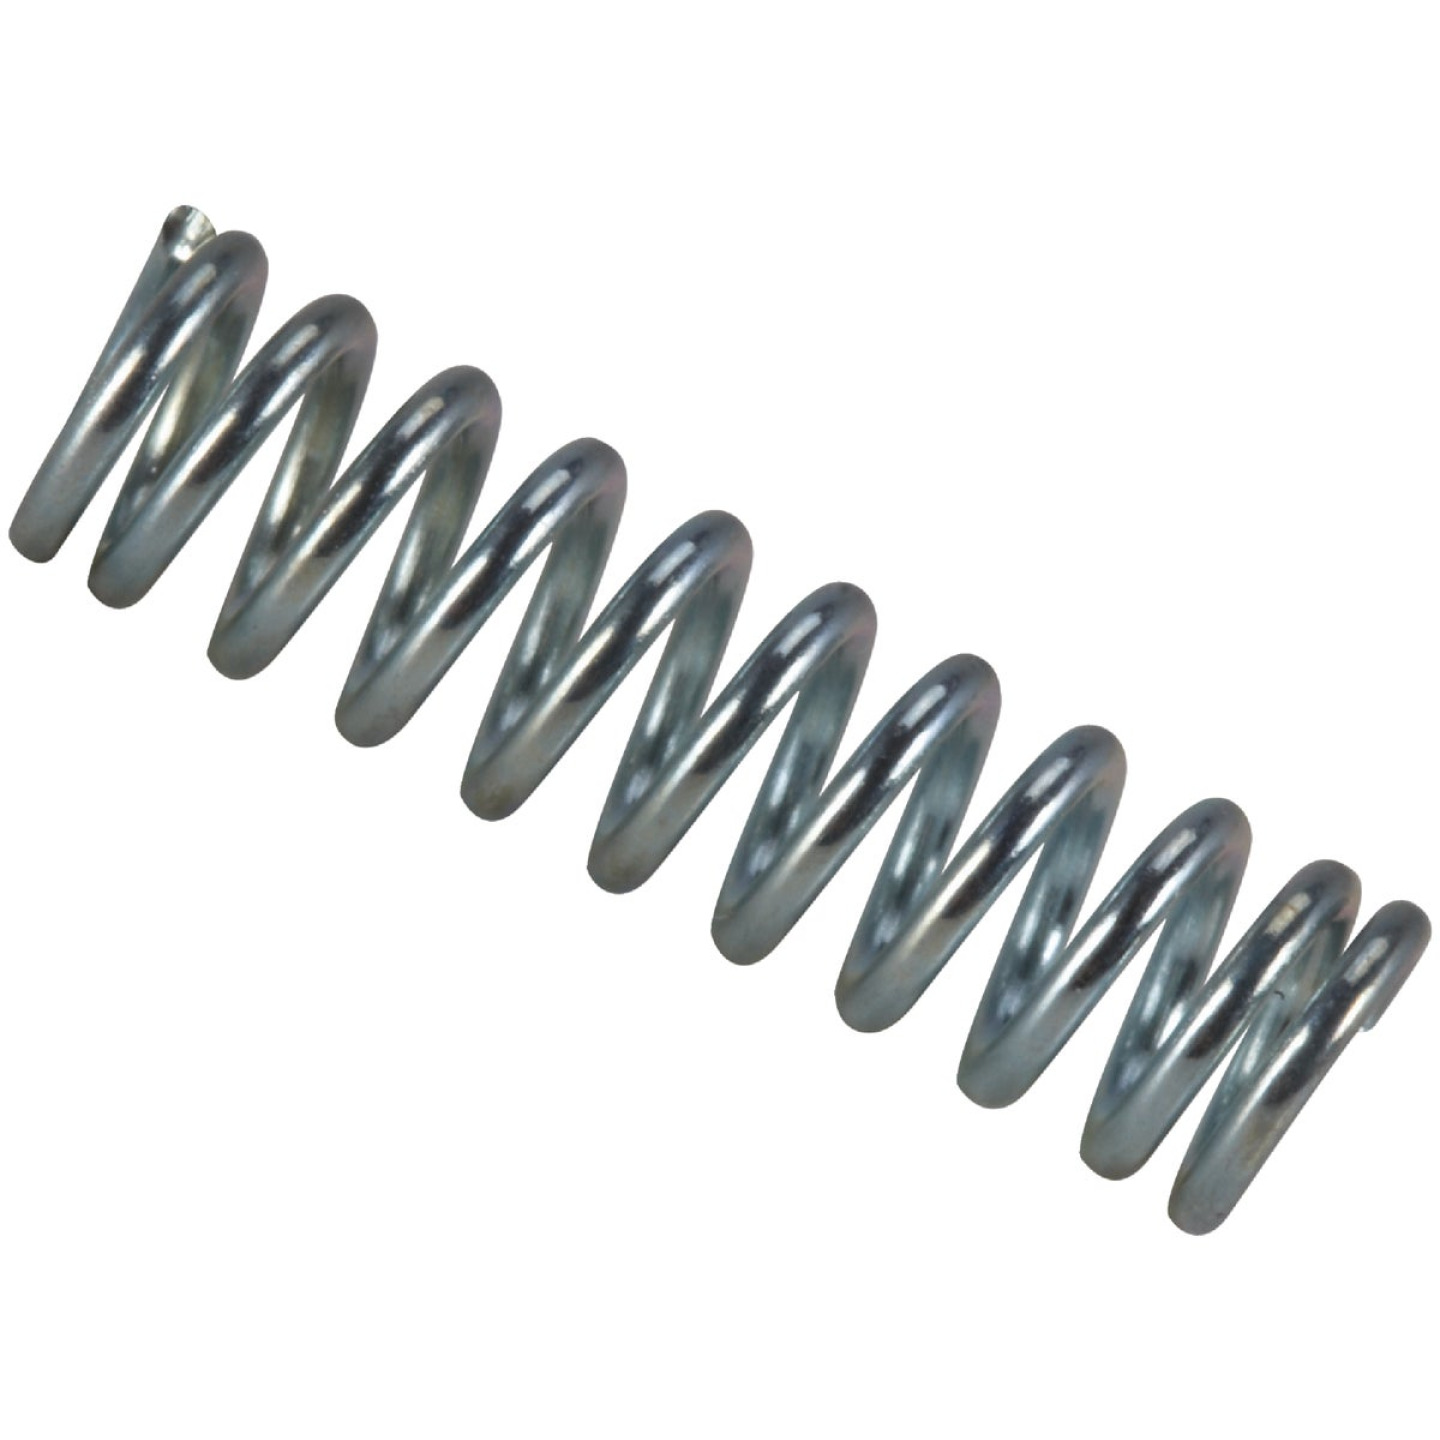 Century Spring 3 In. x 5/8 In. Compression Spring (2 Count) Image 1